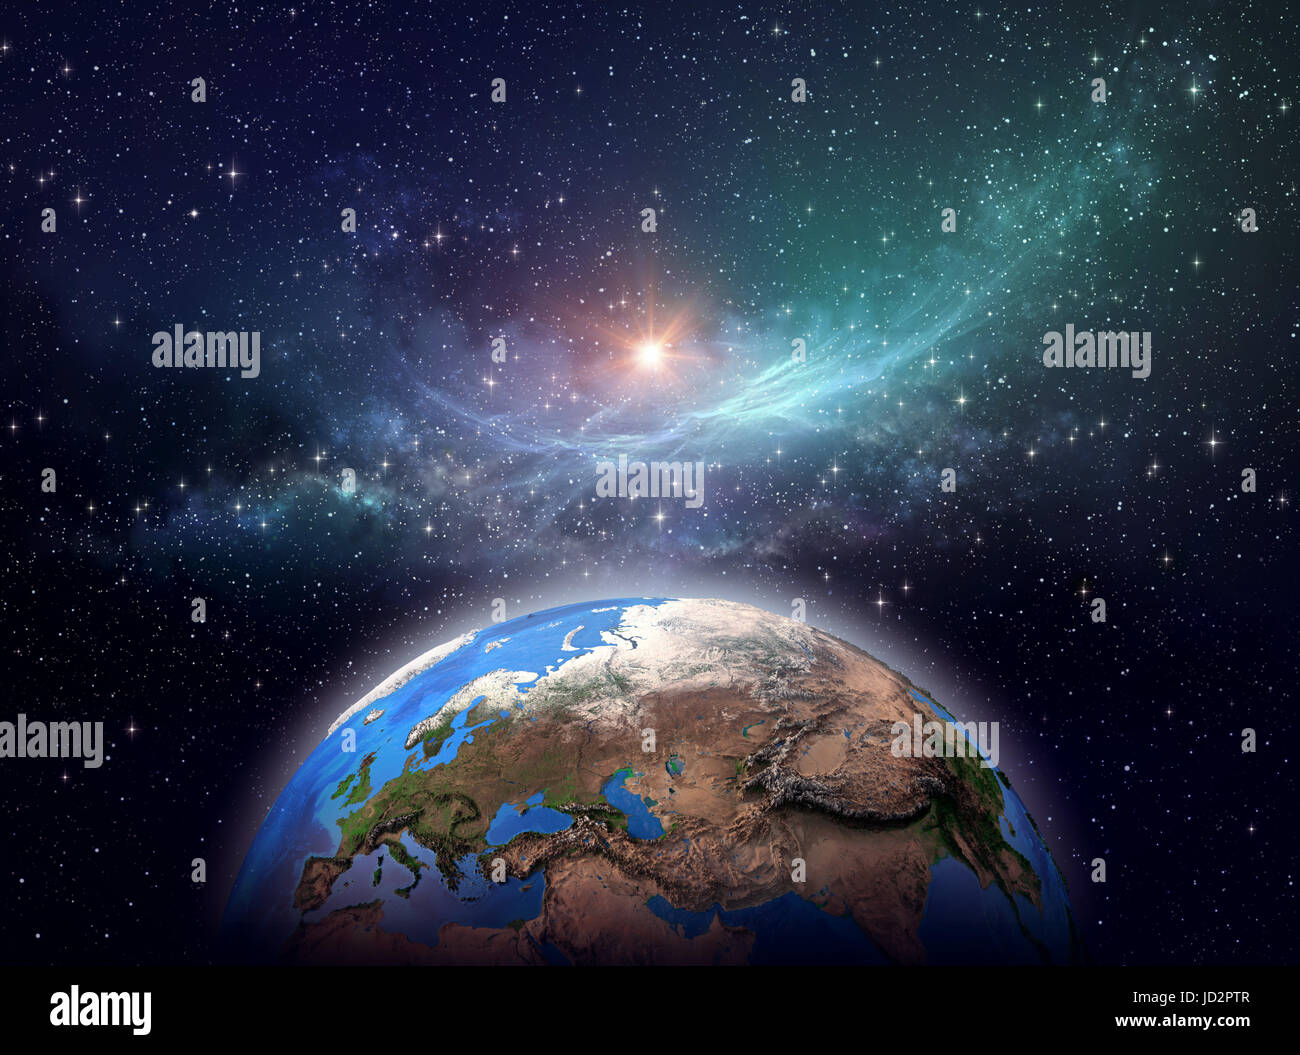 Planet Earth, star cluster and nebula in outer space, bright light shining far behind - Elements of this image furnished - Stock Image